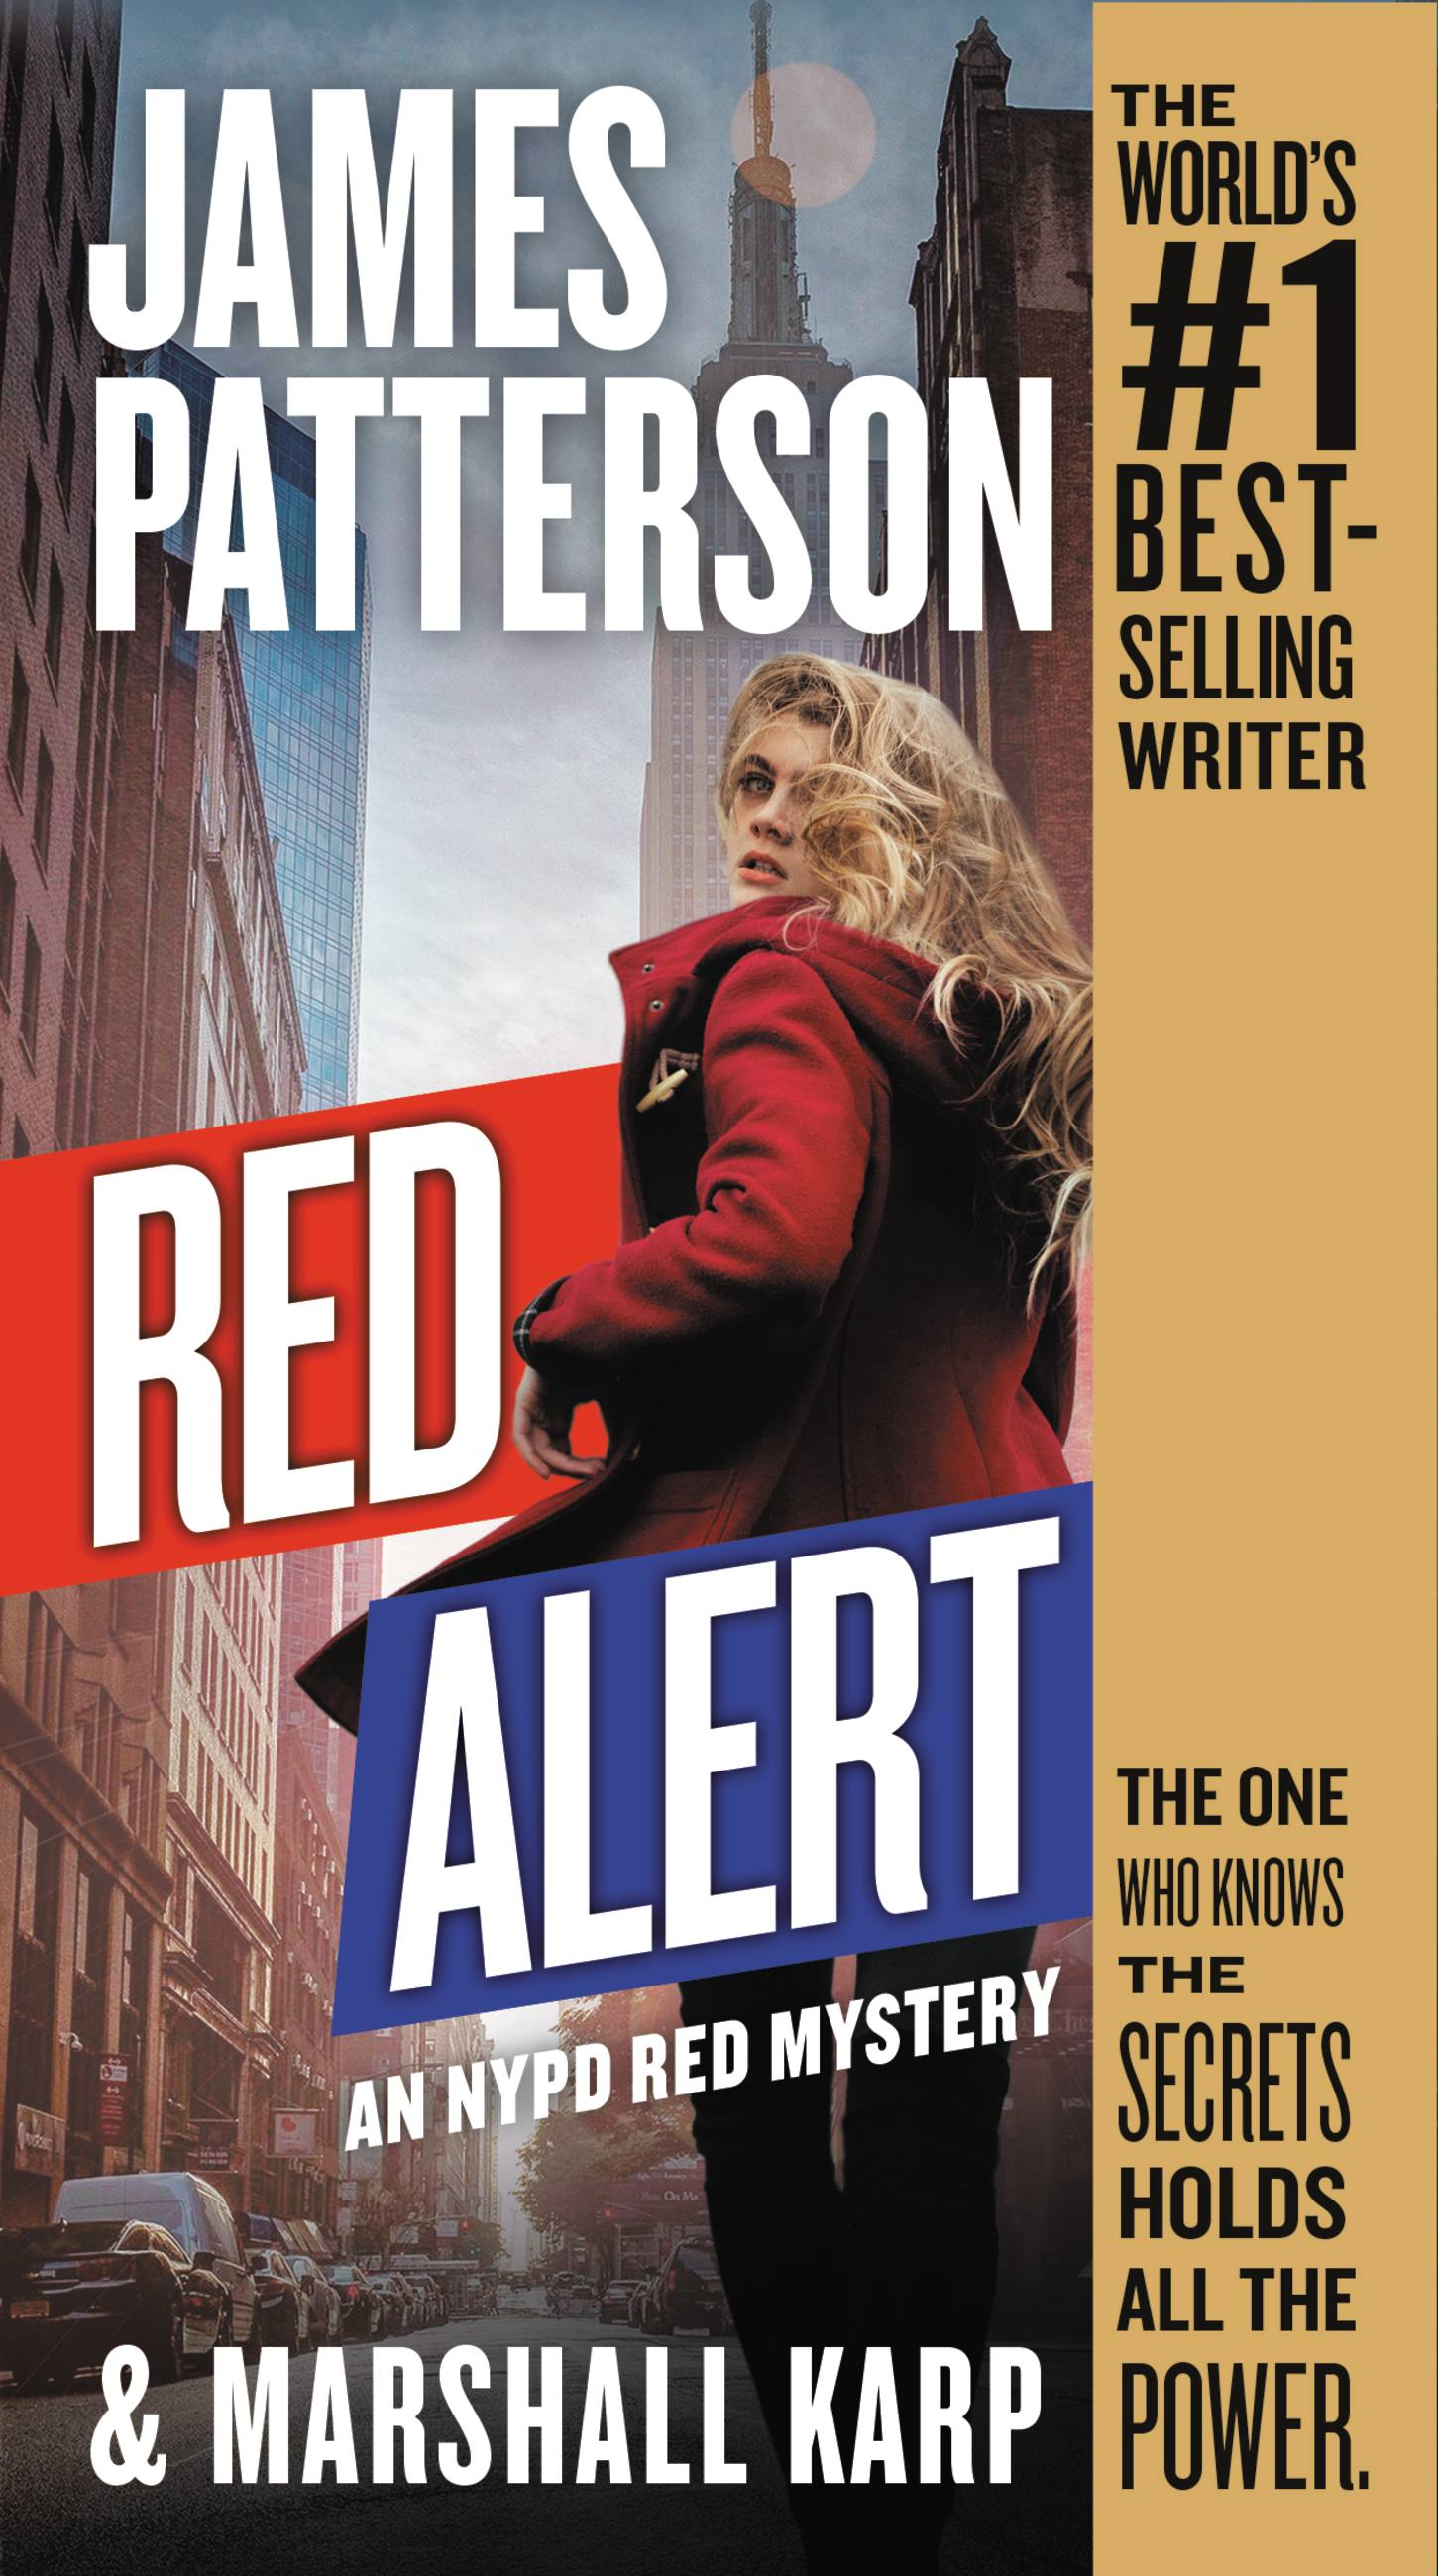 Red Alert An NYPD Red Mystery